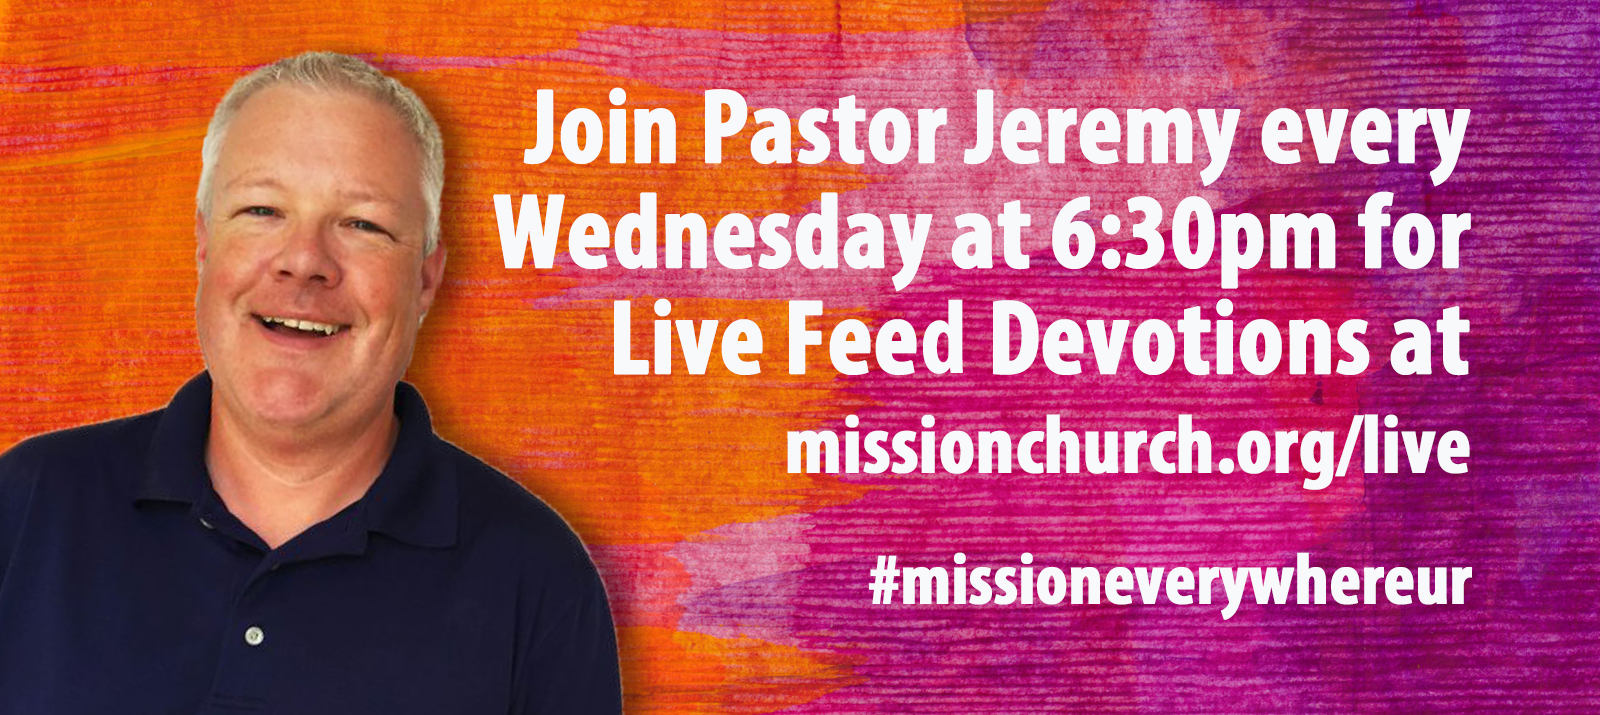 Join Pastor Jeremy every wed. at 6:30 pm for devotional live